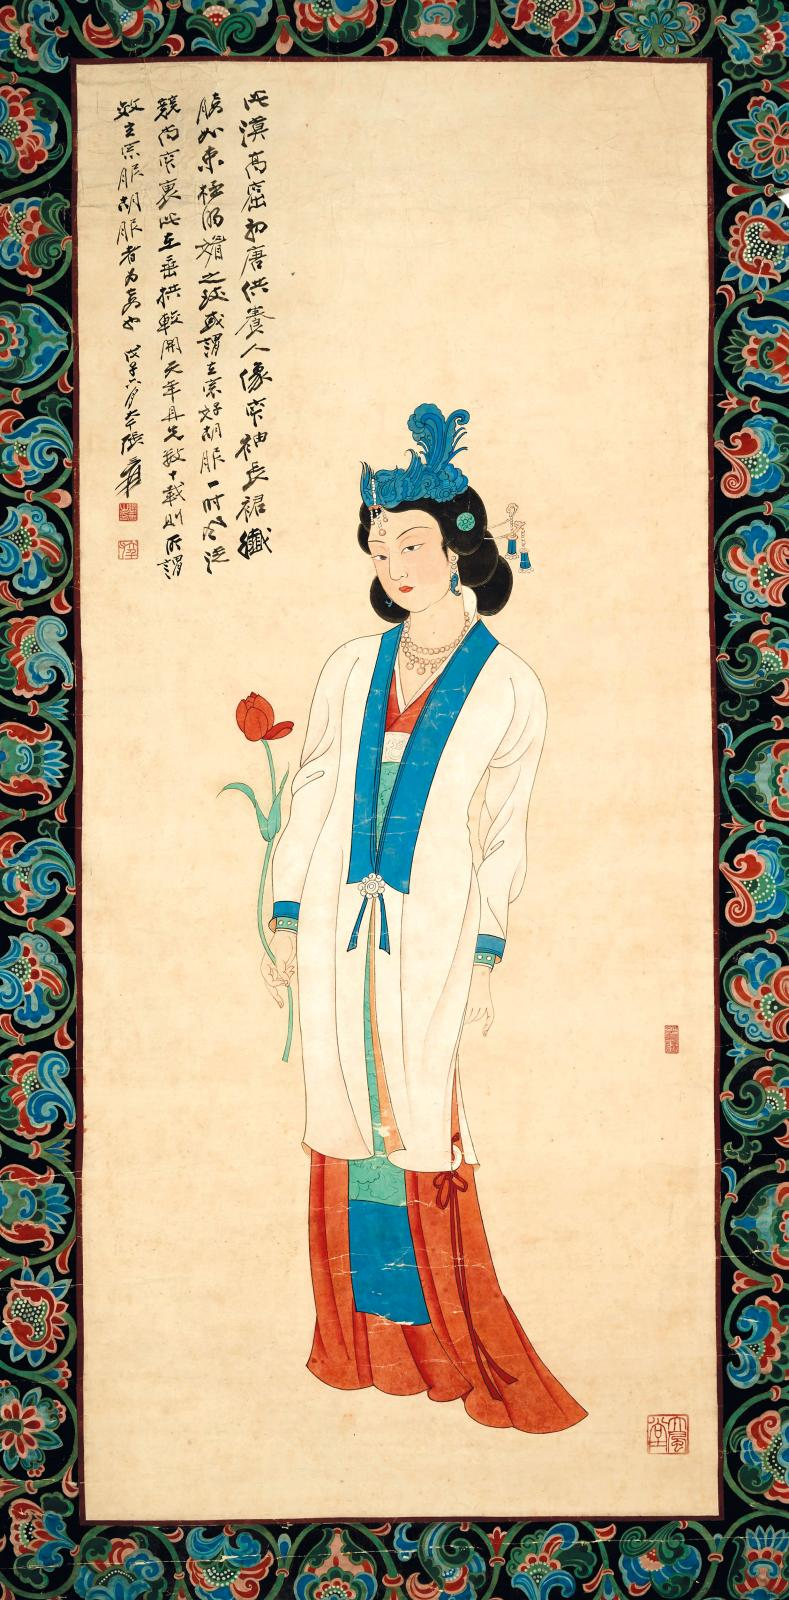 """12 June Studio of Zhang Daqian (1899-1983), """"Court lady holding a red lotus flower"""", ink and colours on paper. Signed on the bottom left, followed by"""